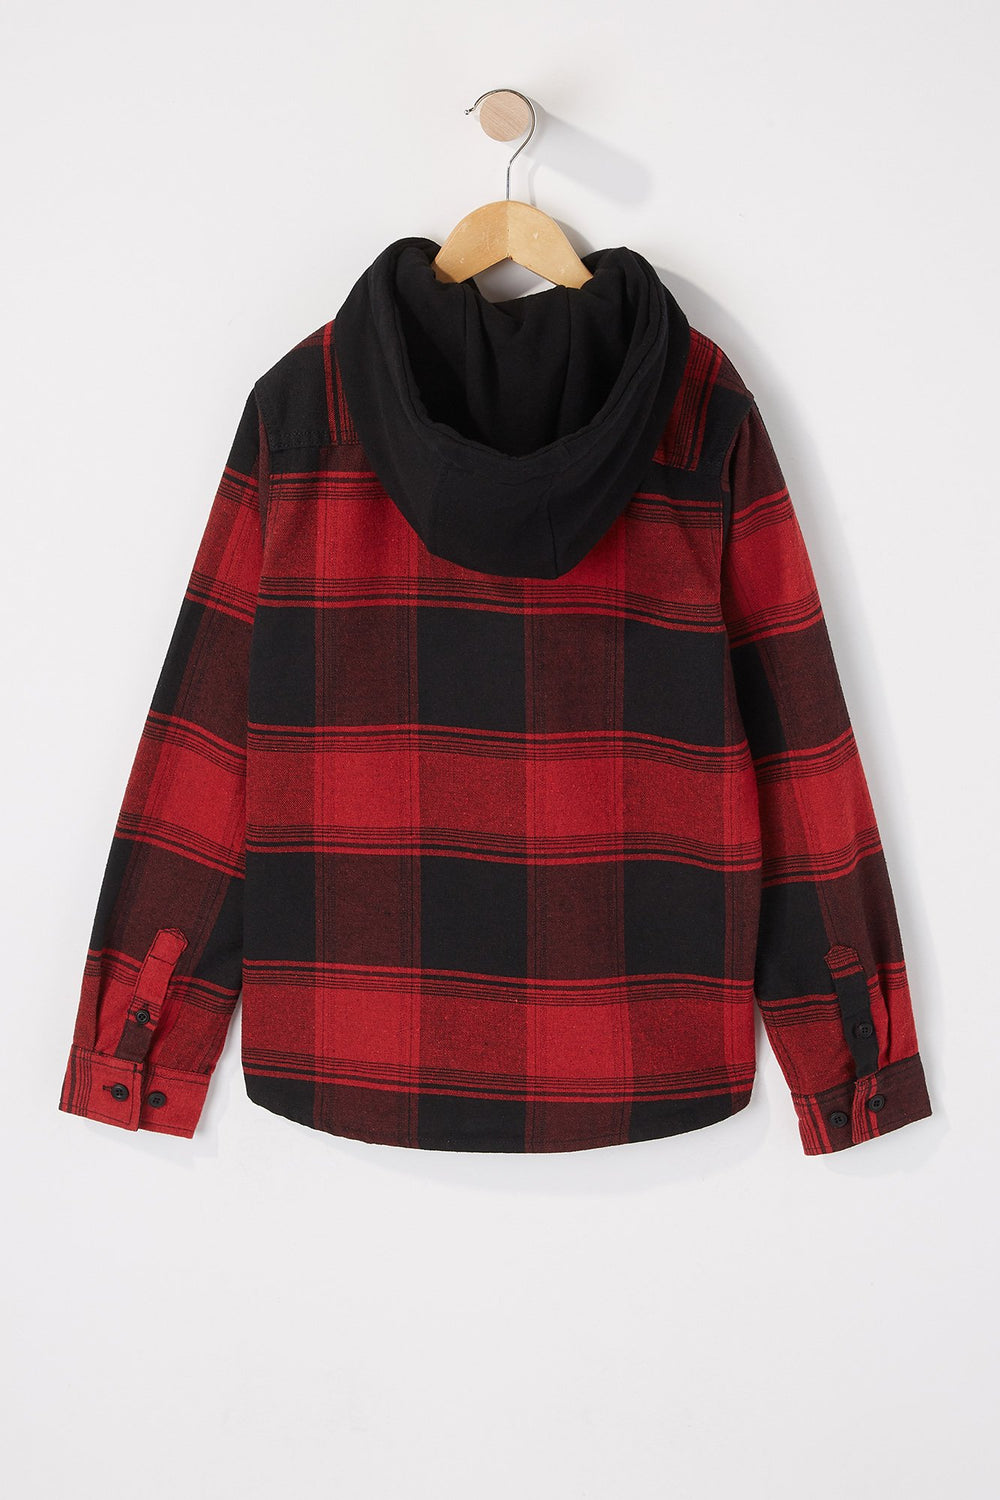 West49 Boys Hooded Flannel Plaid Button-Up Shirt Red